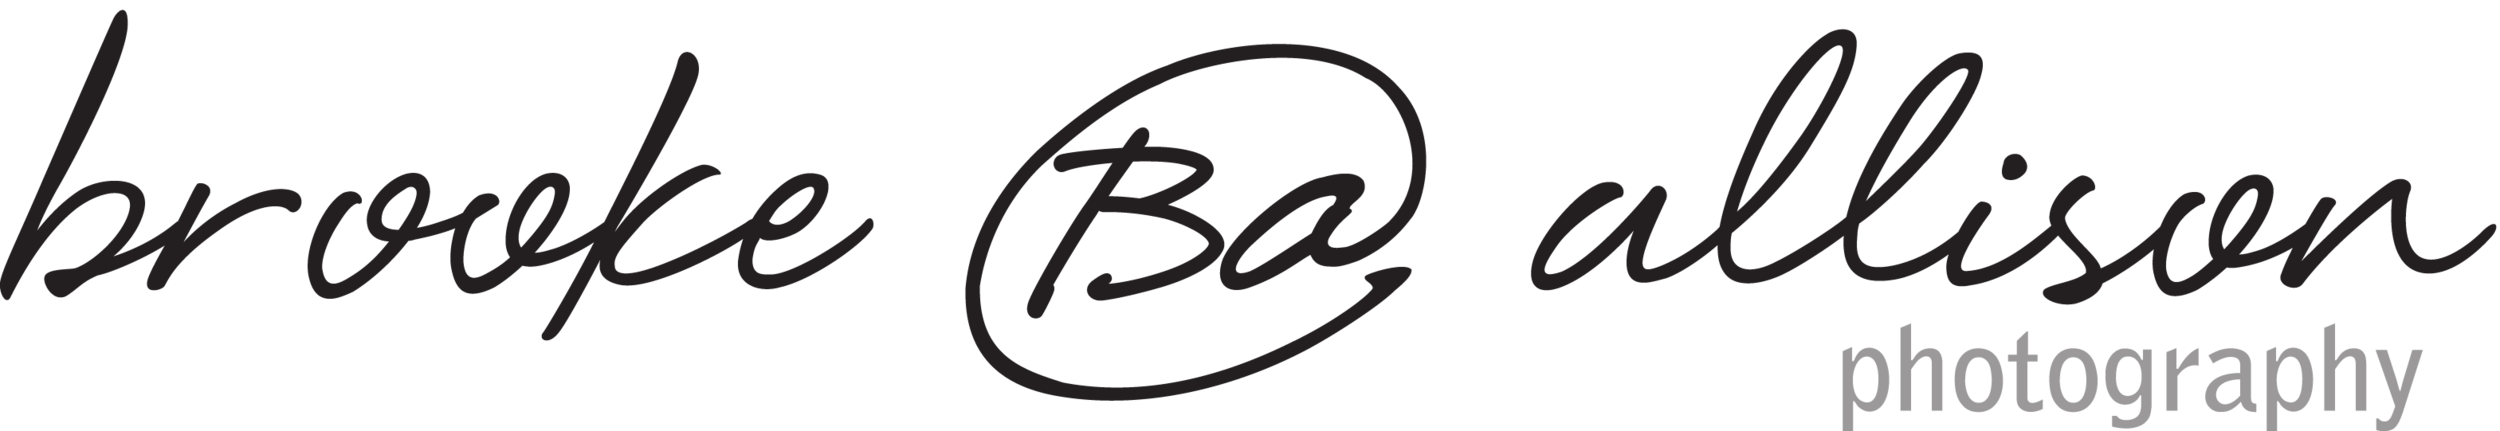 brookes-logo-outlined.png